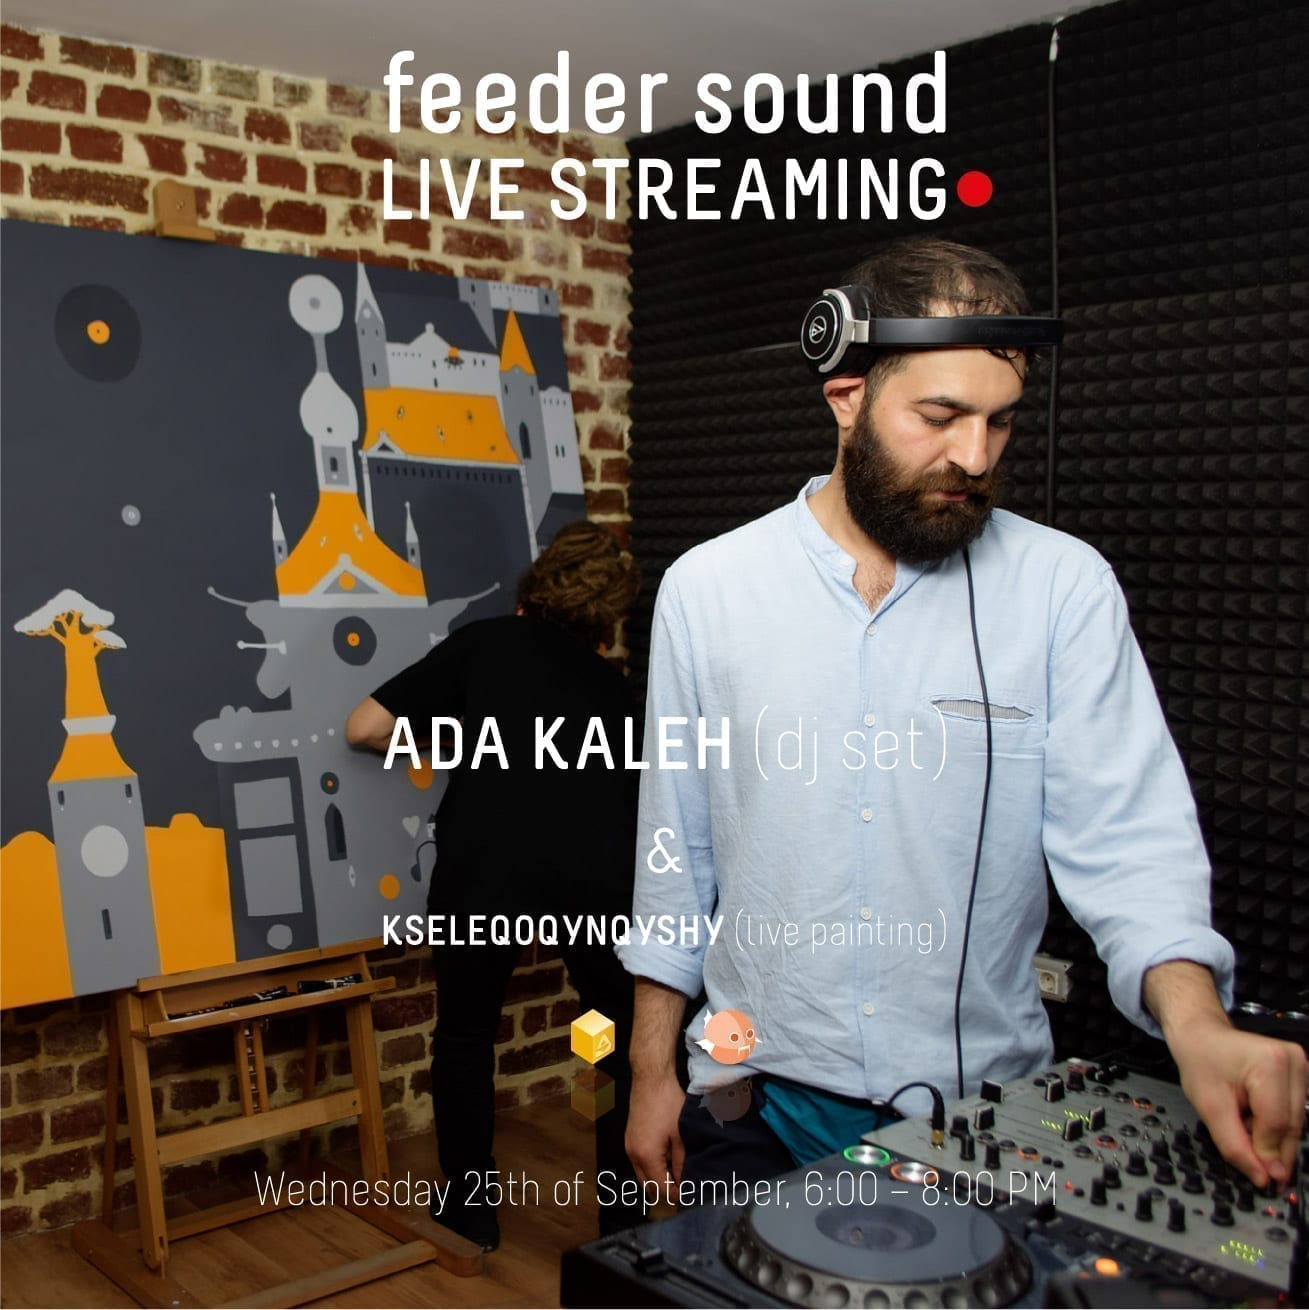 BTLT: feeder sound LIVE stream with ADA KALEH (dj set) & KSELEQOQYNQYSHY (live painting) [video]